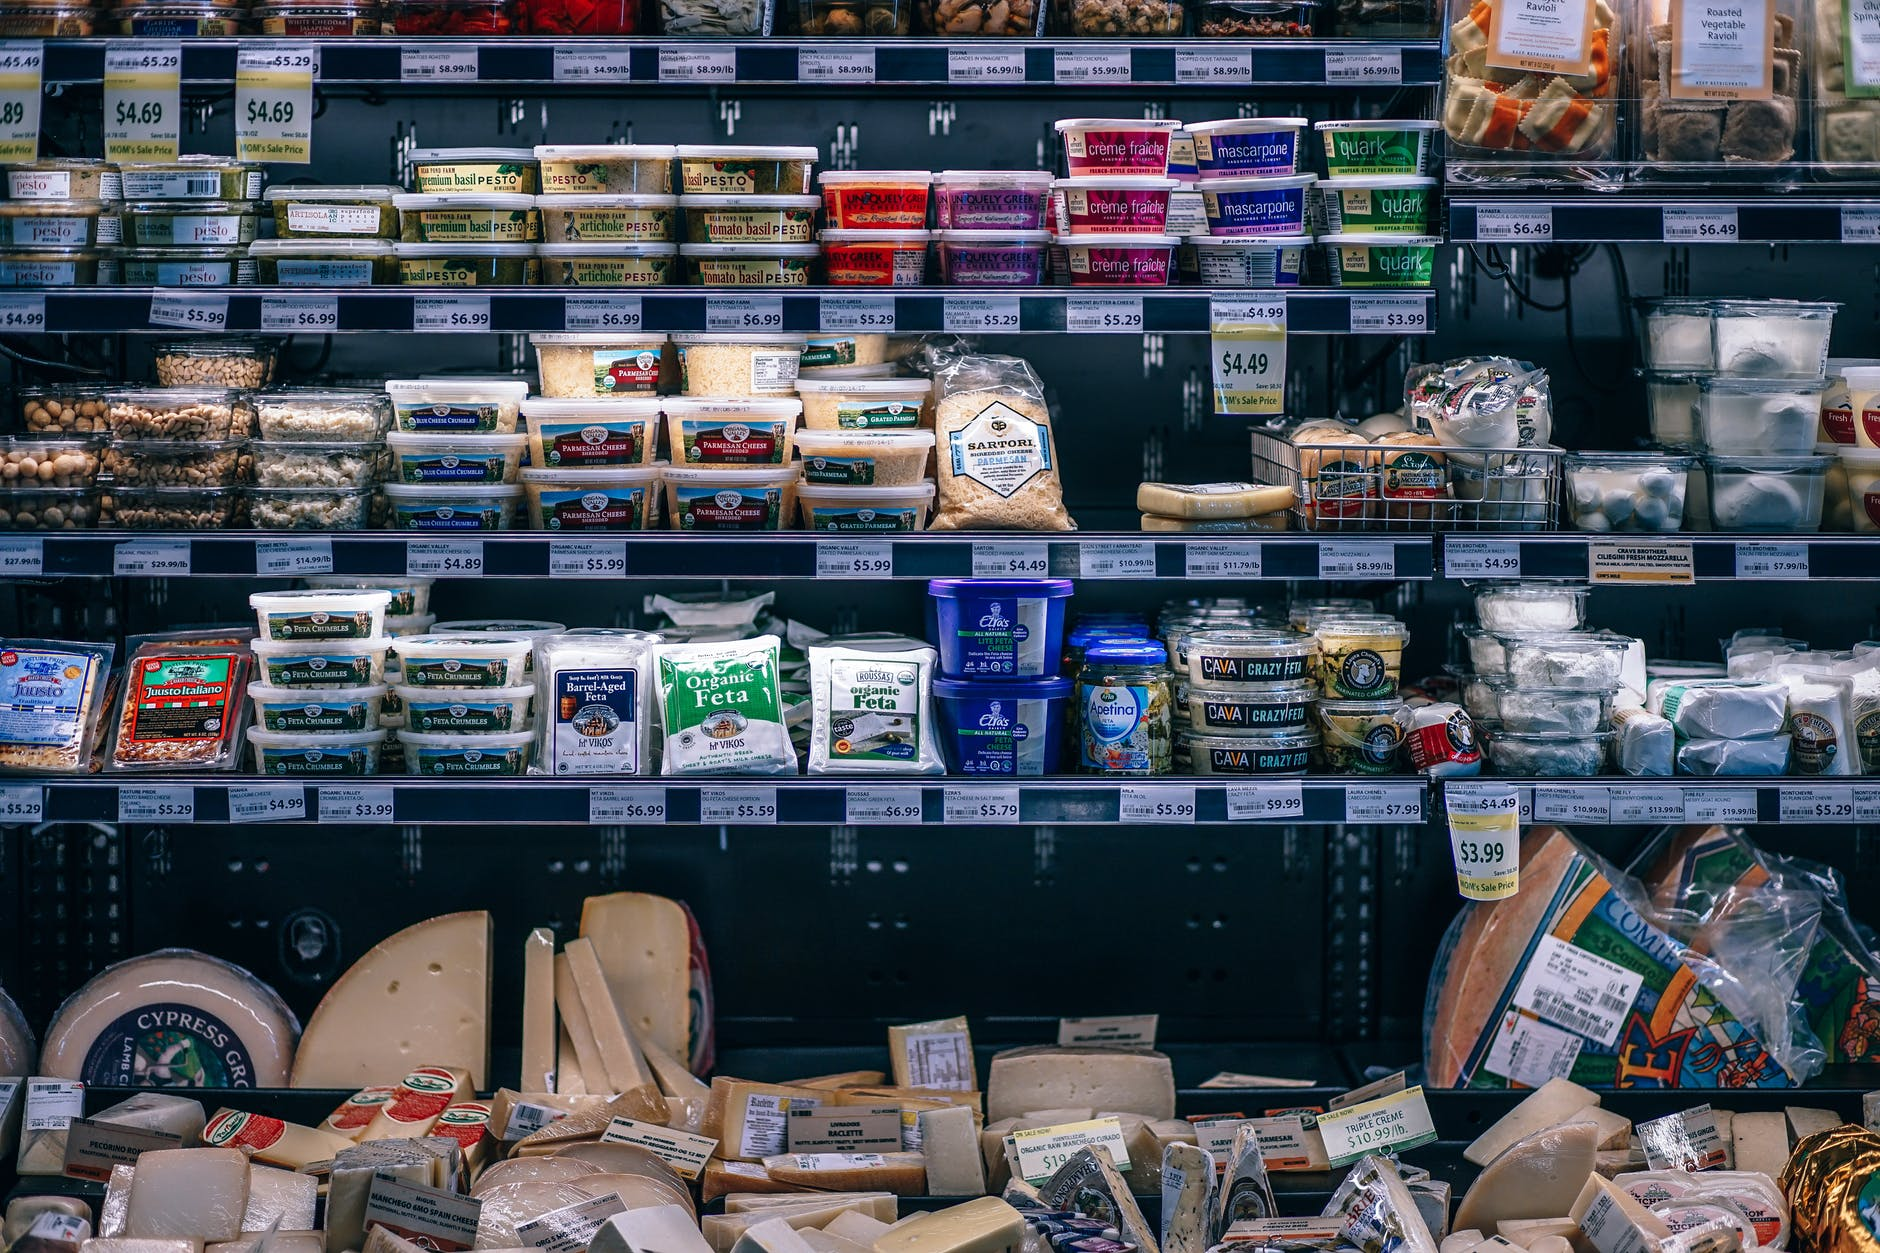 cheese section at the supermarket